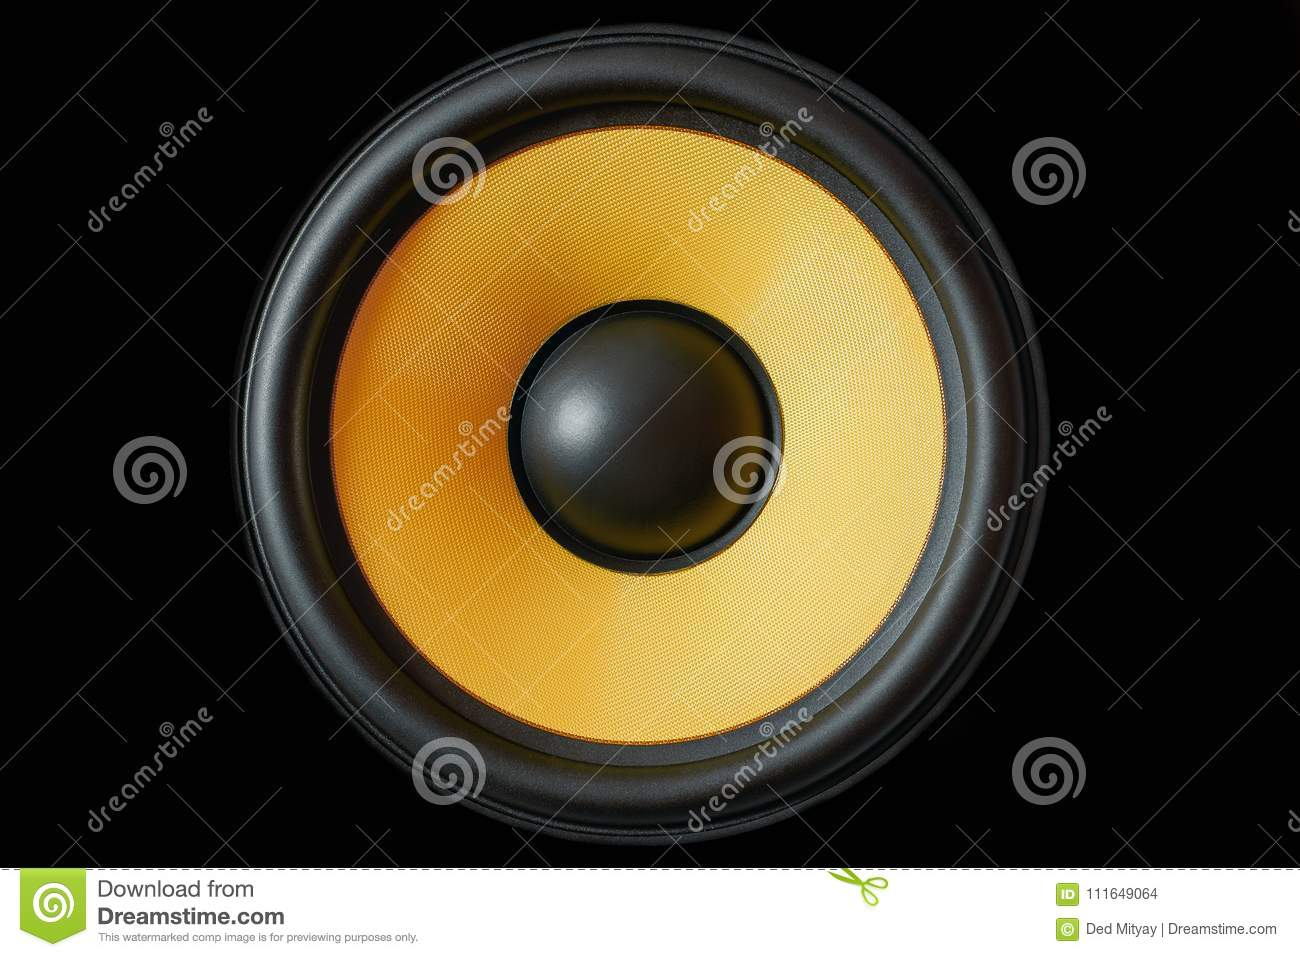 Subwoofer dynamic membrane or sound speaker isolated on black background, yellow Hi-Fi loudspeaker close up